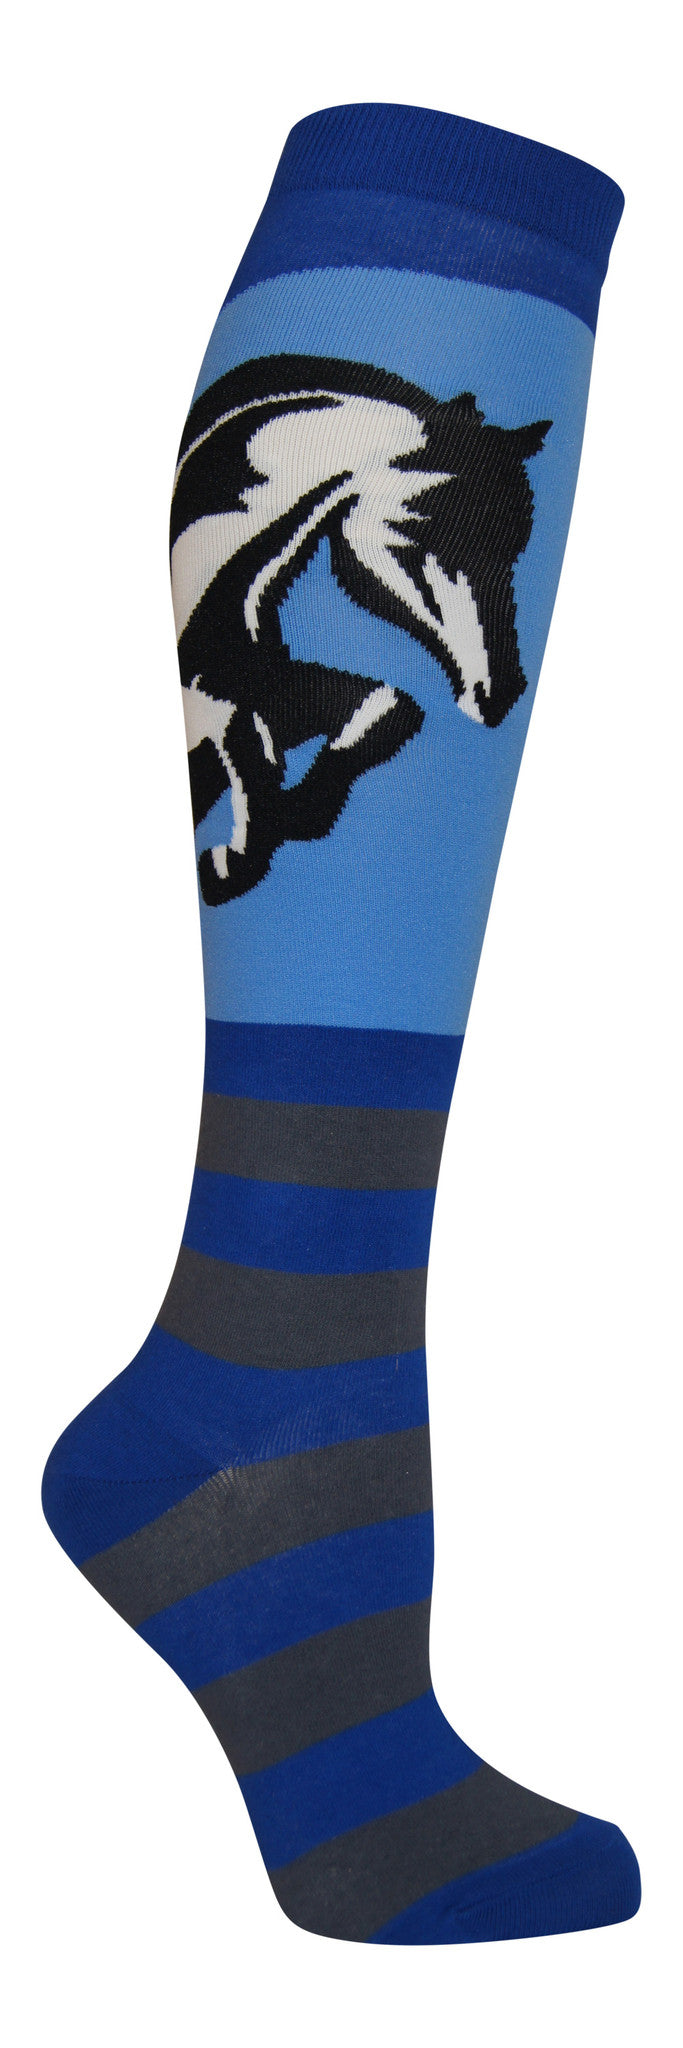 """Striped Jumper"" cotton-rich knee sock from lucky7socks.com"